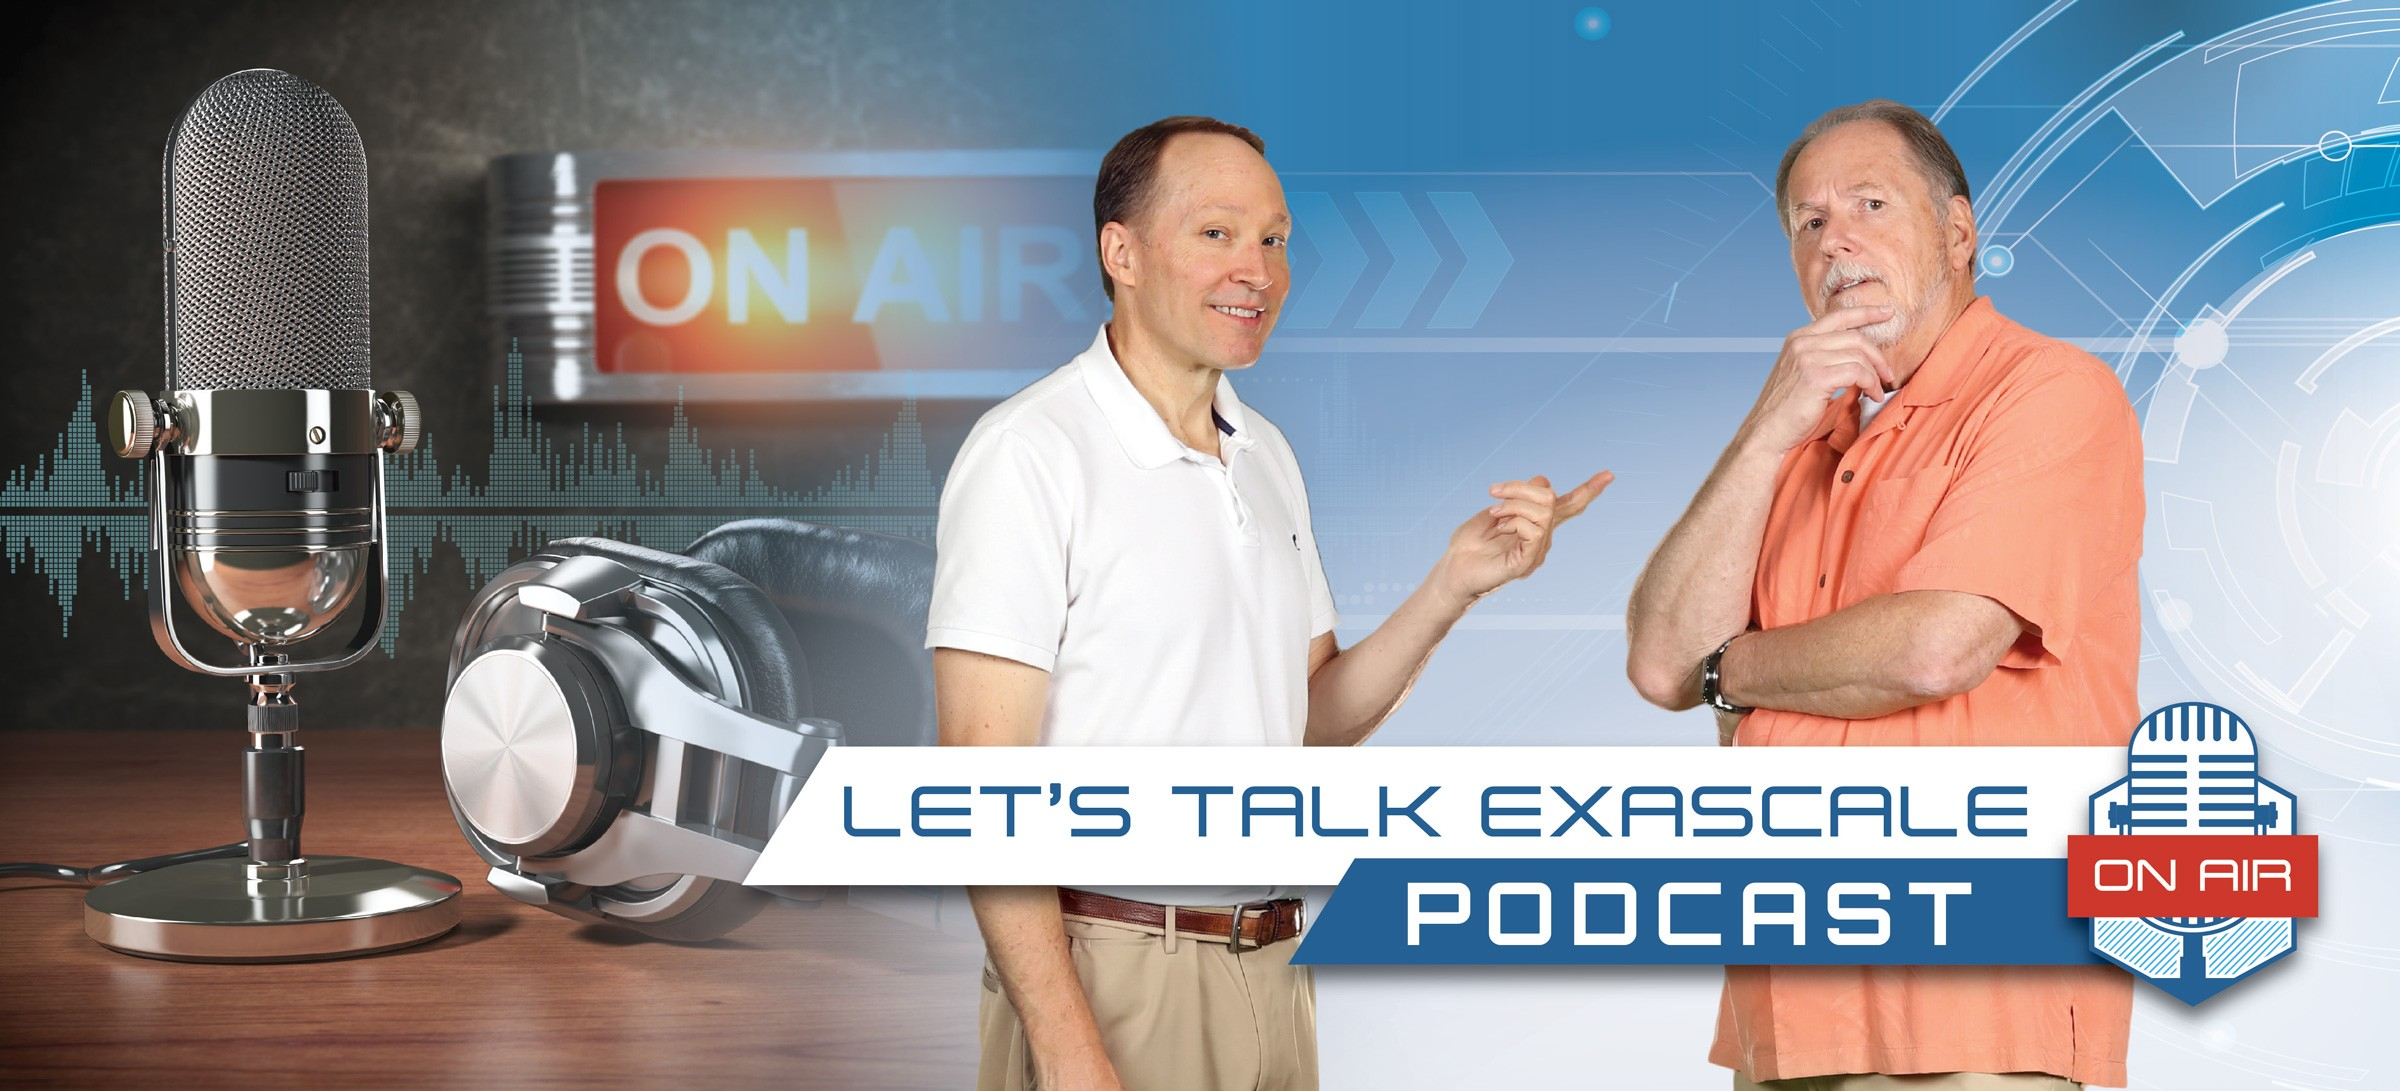 ECP Podcast, Let's talk exascale